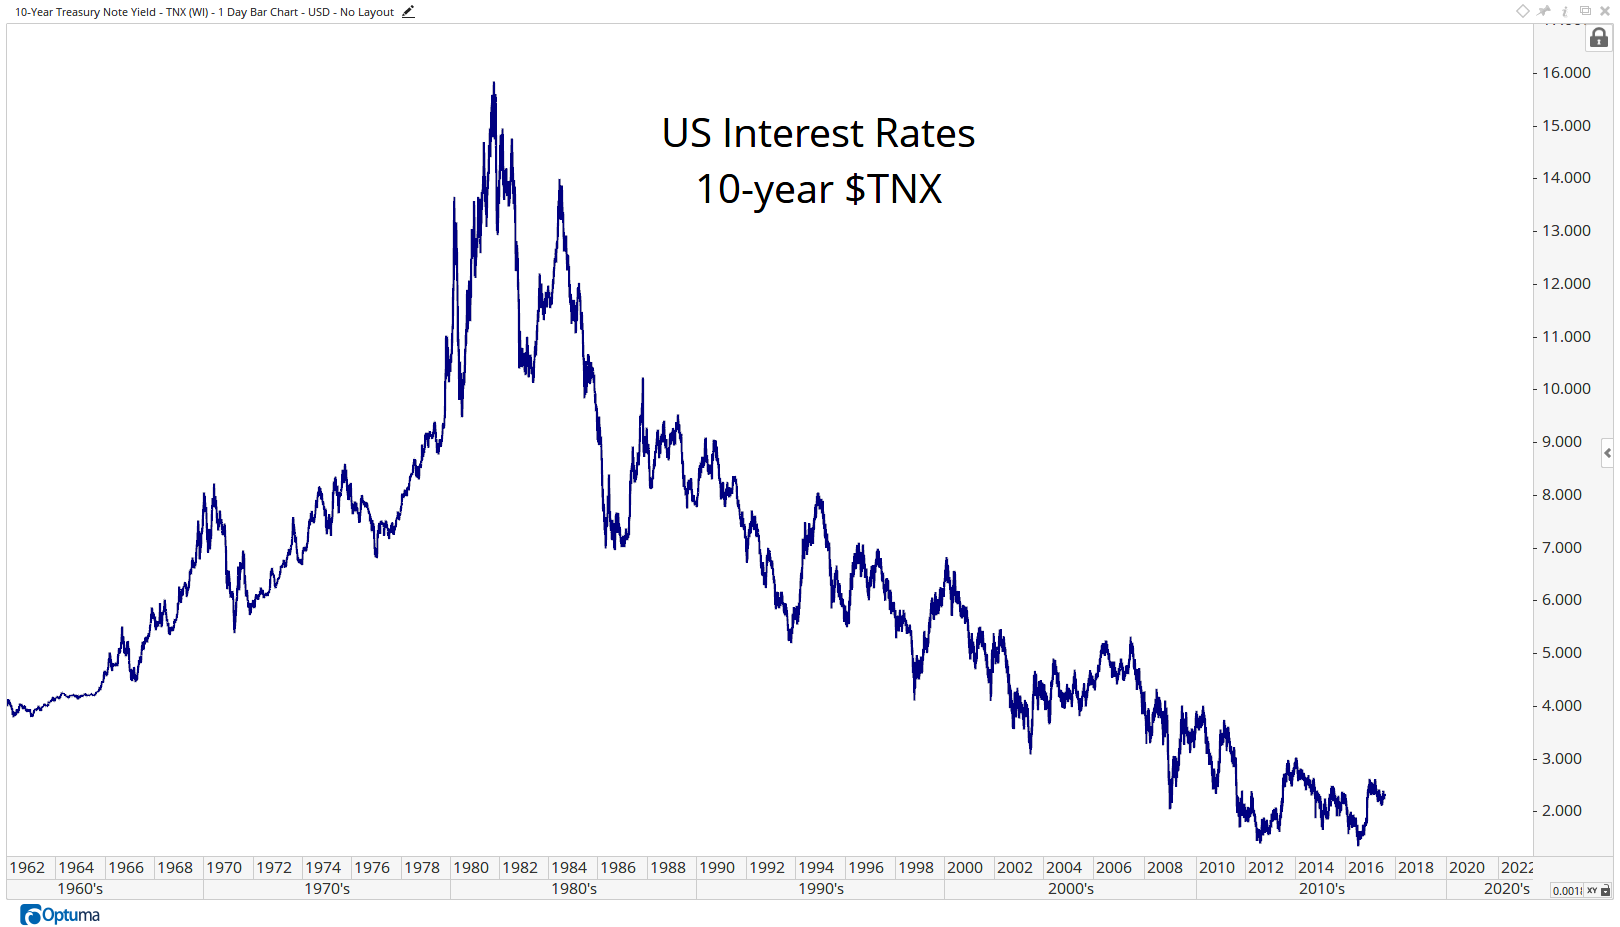 TNX - 10-Year Treasury Note Yield9